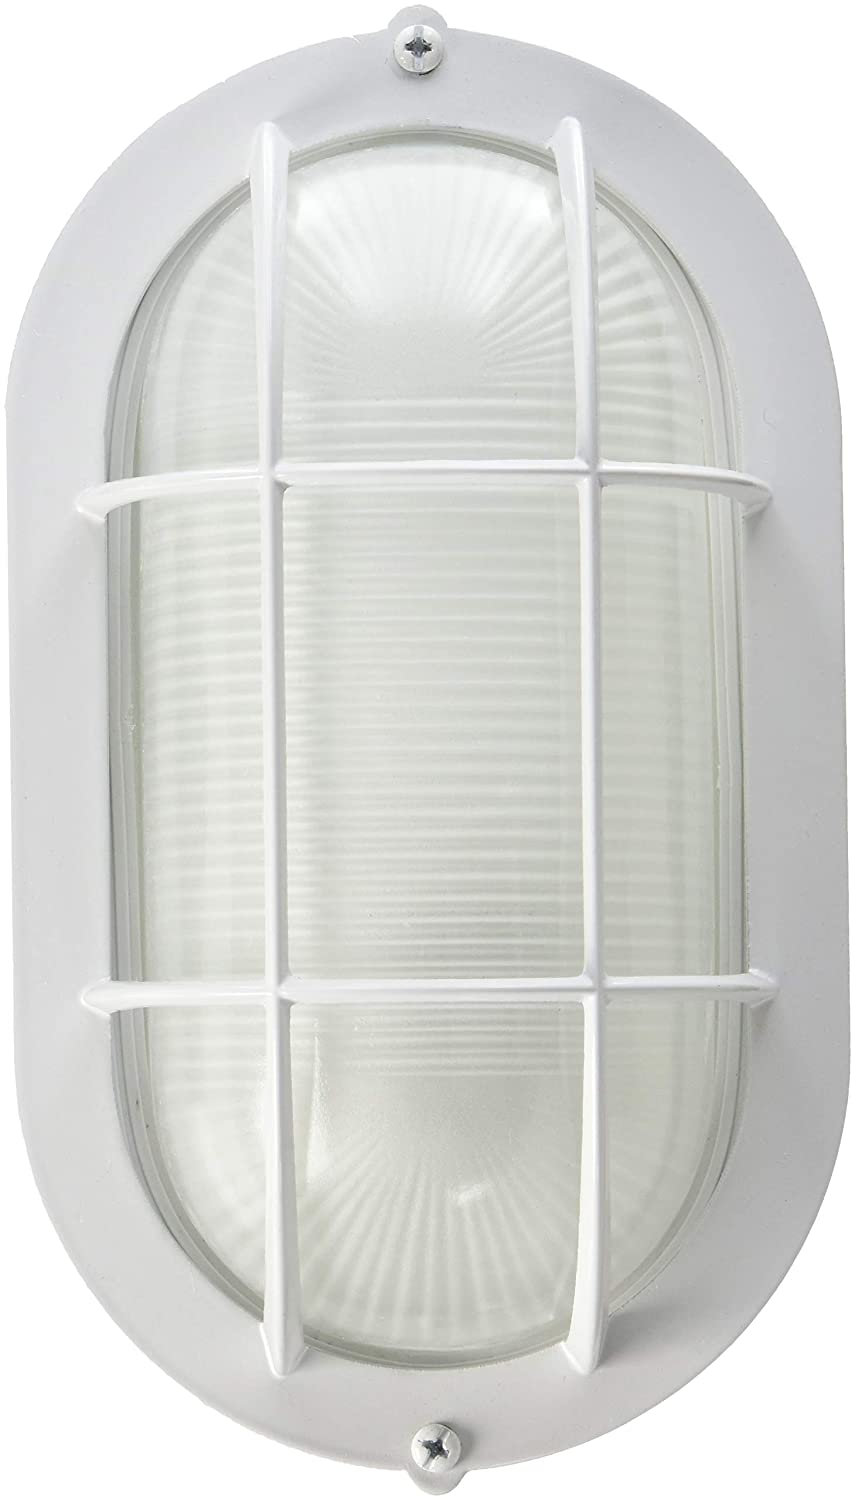 Westinghouse Lighting SL2P Westinghouse 6783500 One-Light Exterior Wall Fixture, Finish on Steel with White Glass Lens, Oblong